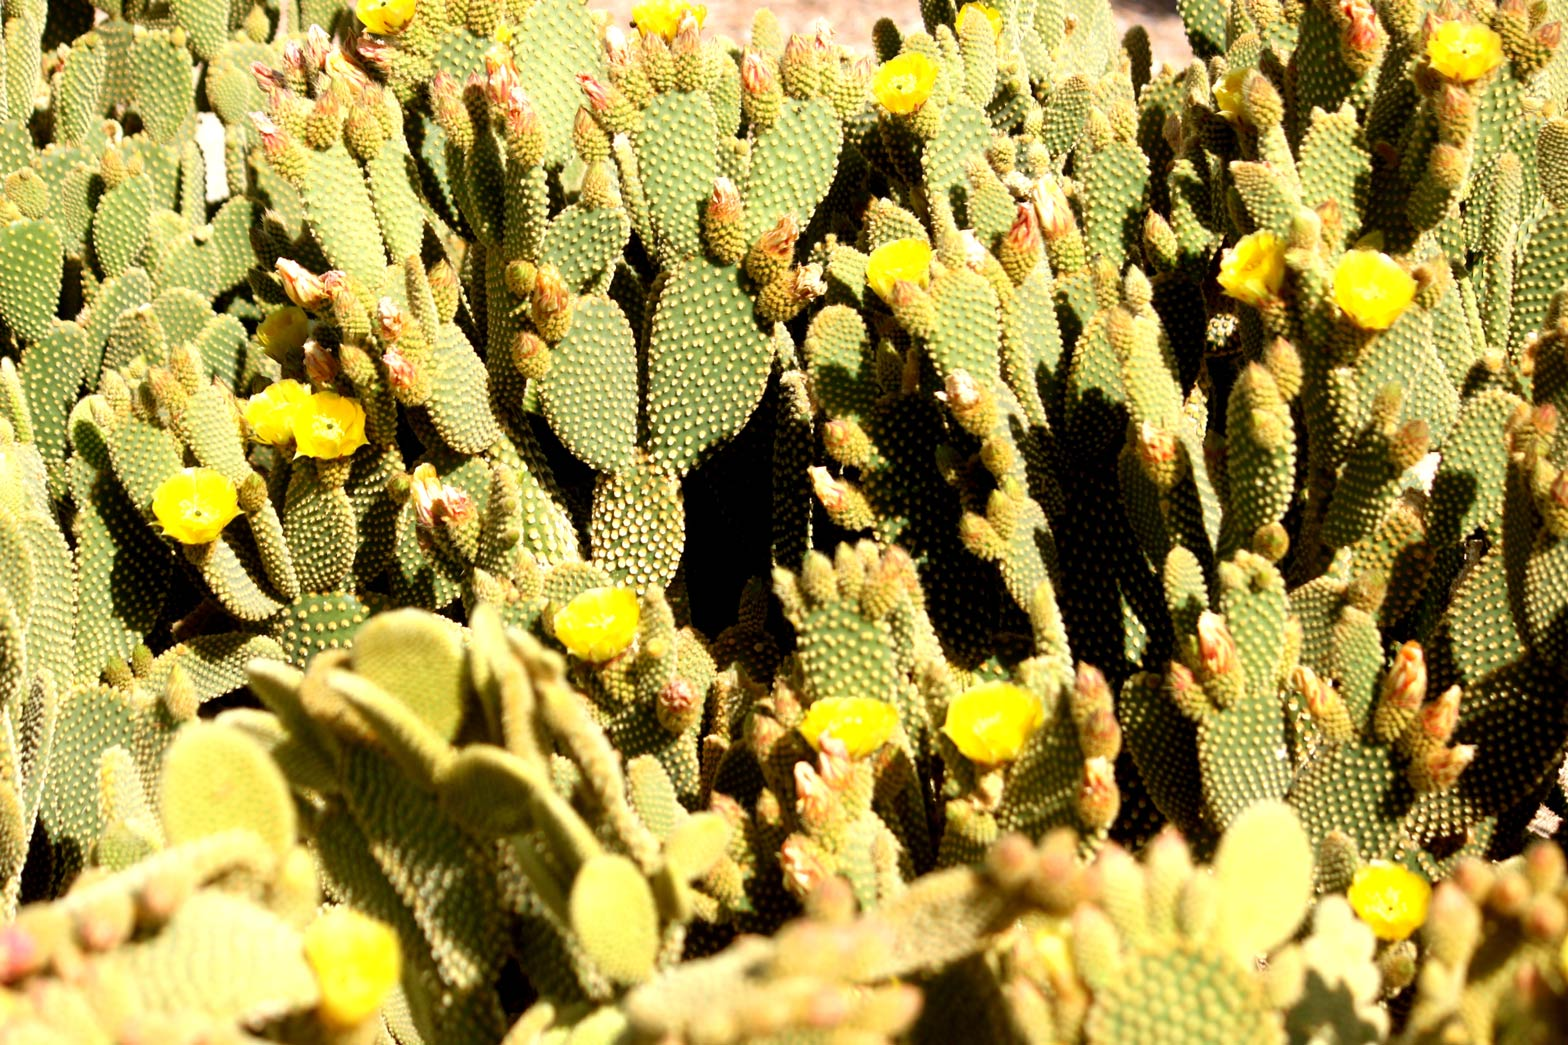 A Bunny Ear cactus with multiple yellow flowers blooming.